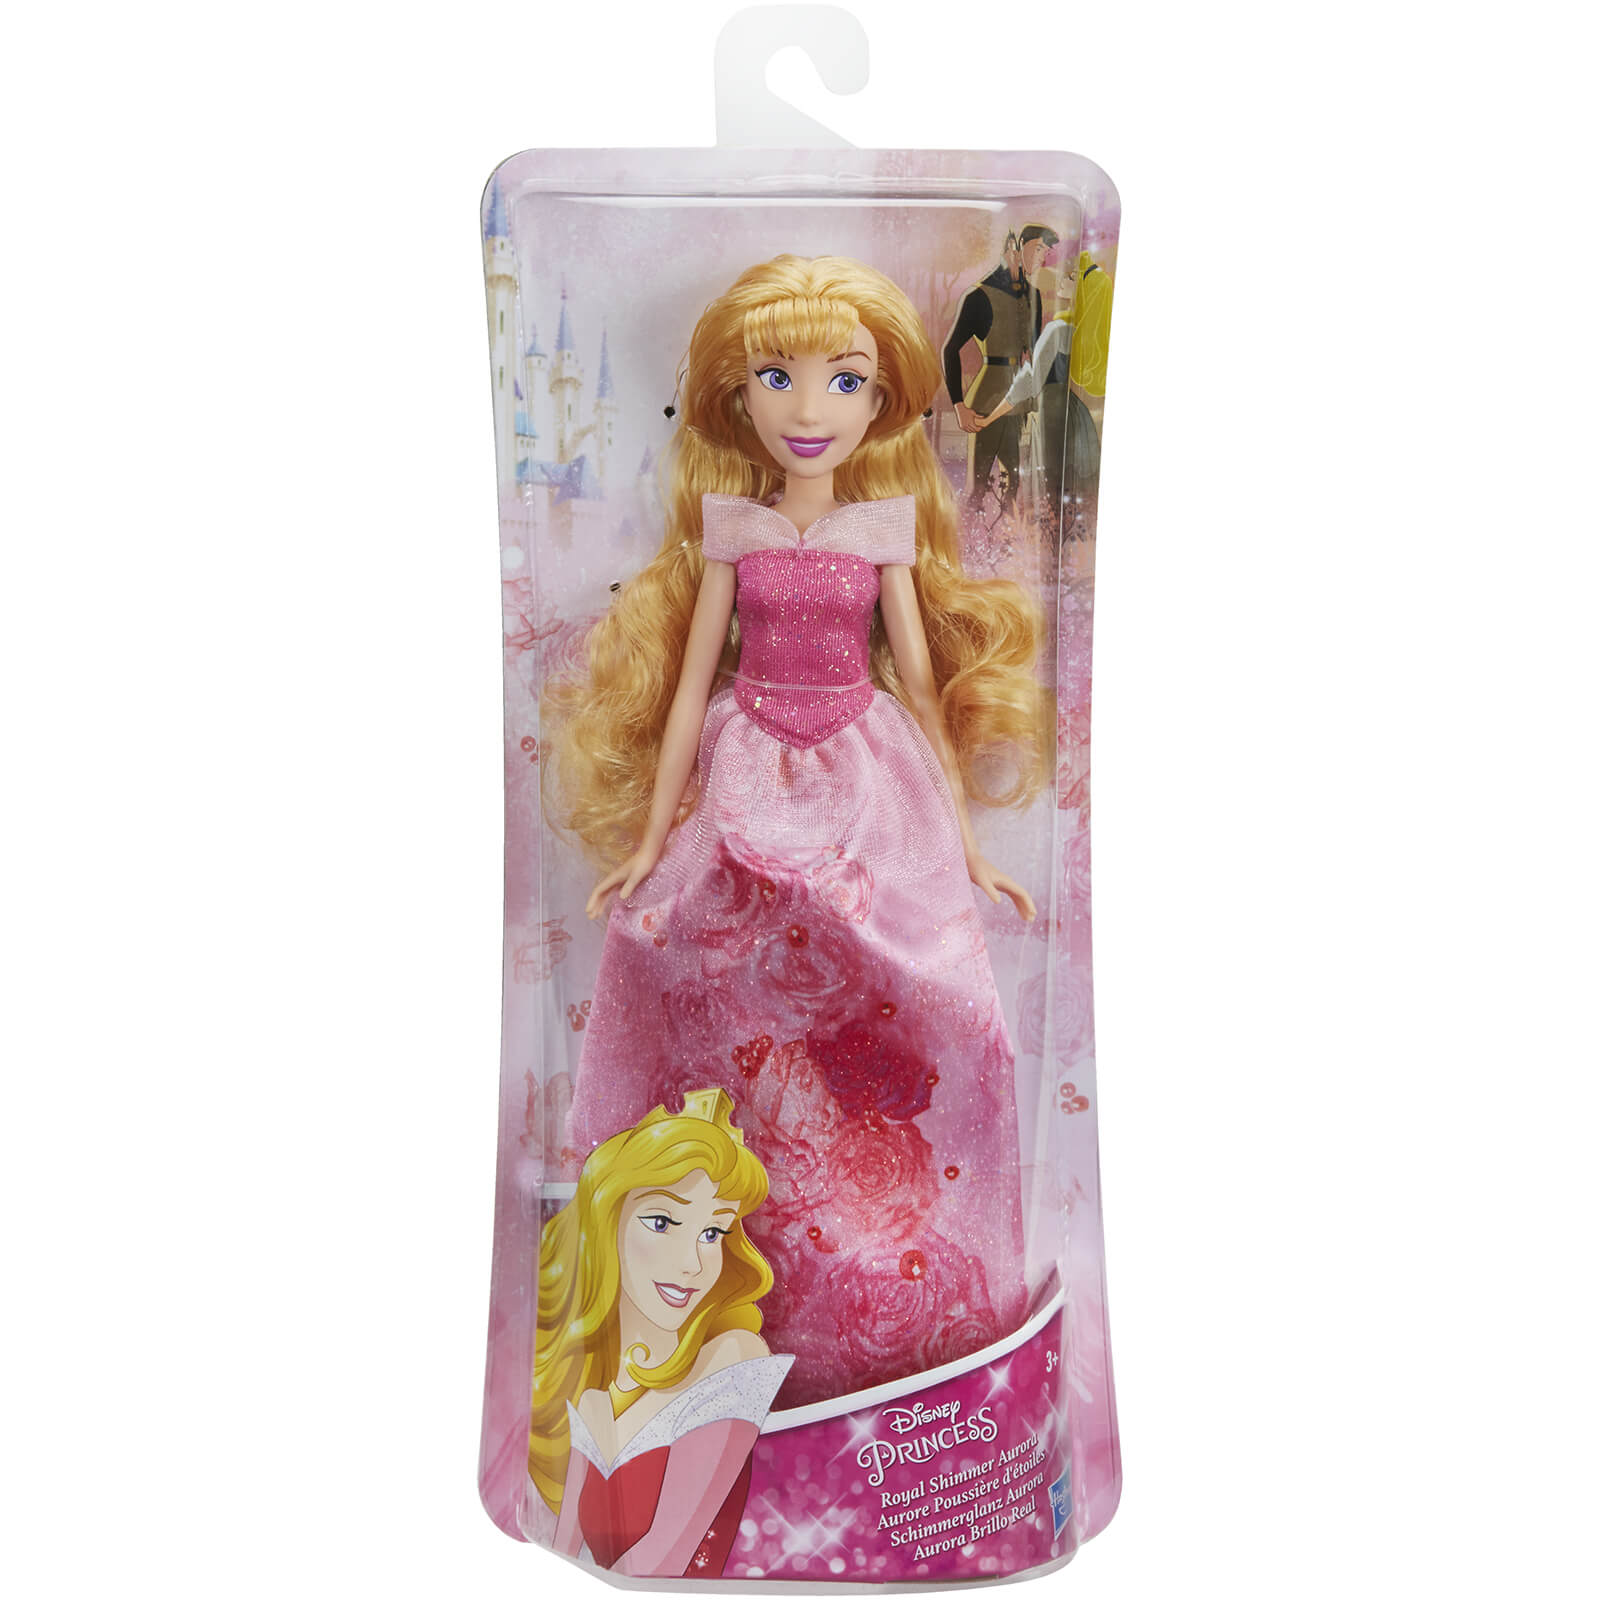 Disney Princess Aurora Royal Shimmer Fashion Doll